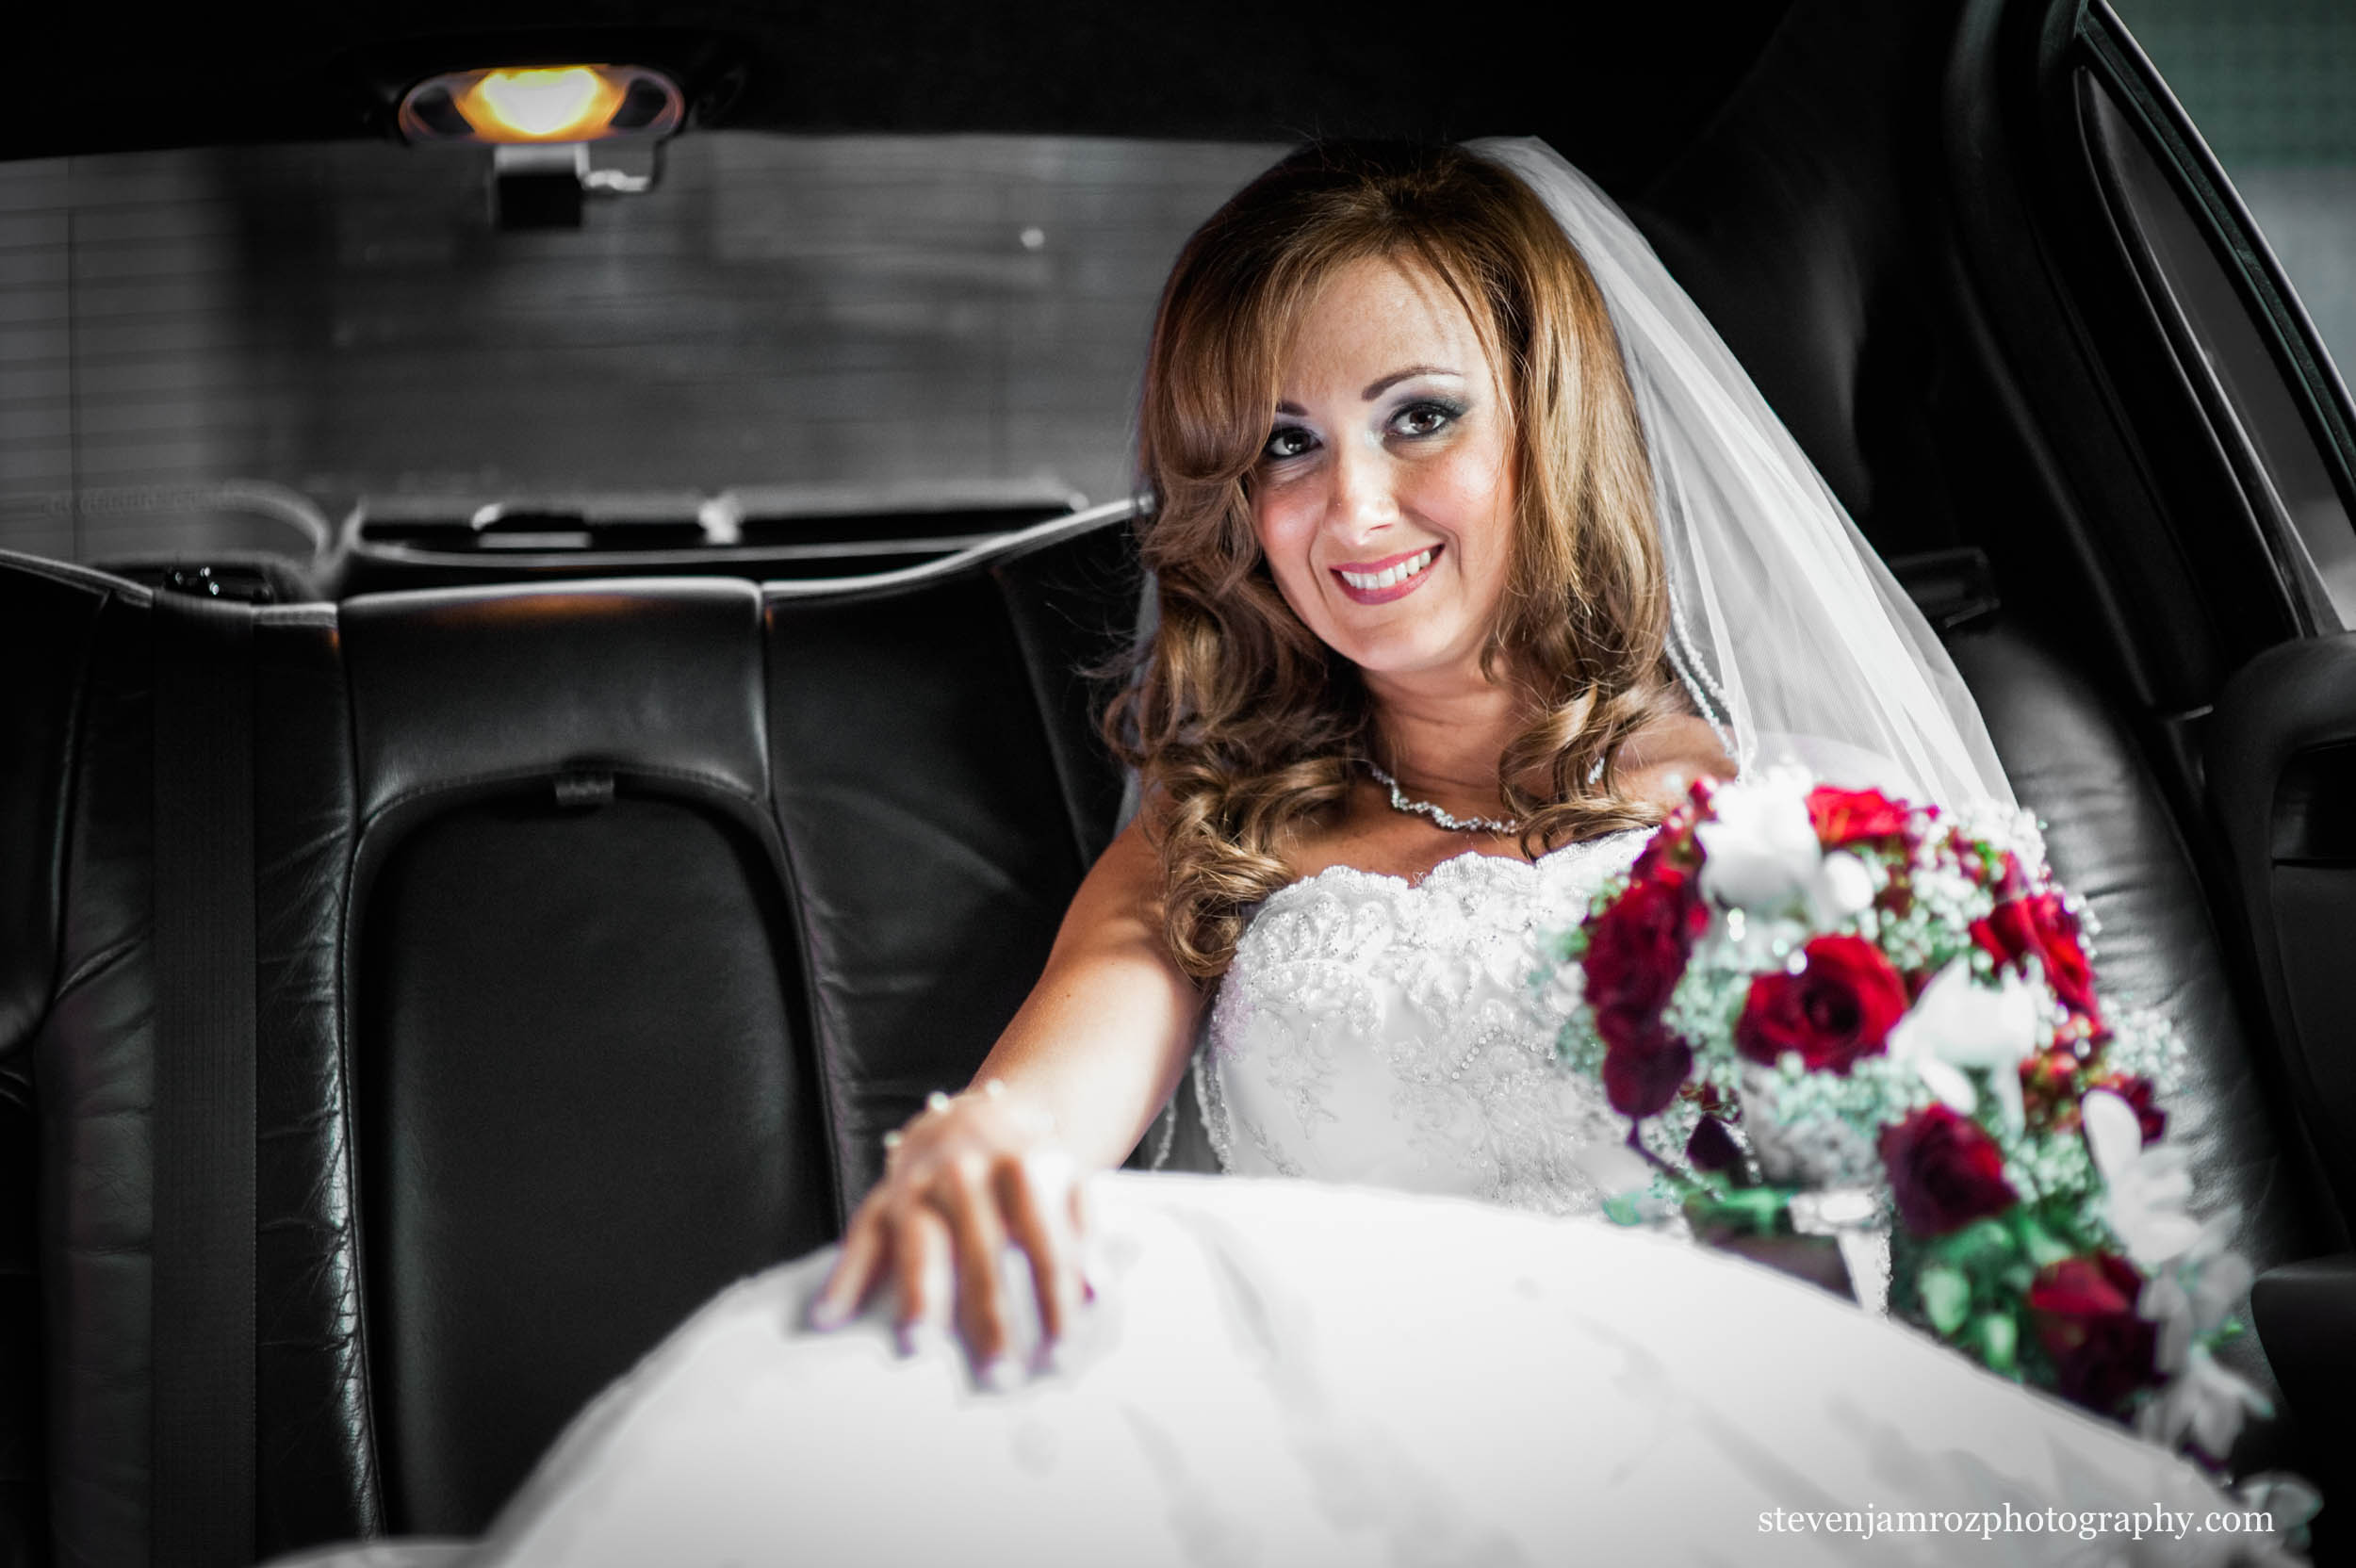 getting-in-limo-wedding-raleigh-steven-jamroz-photography-0282.jpg